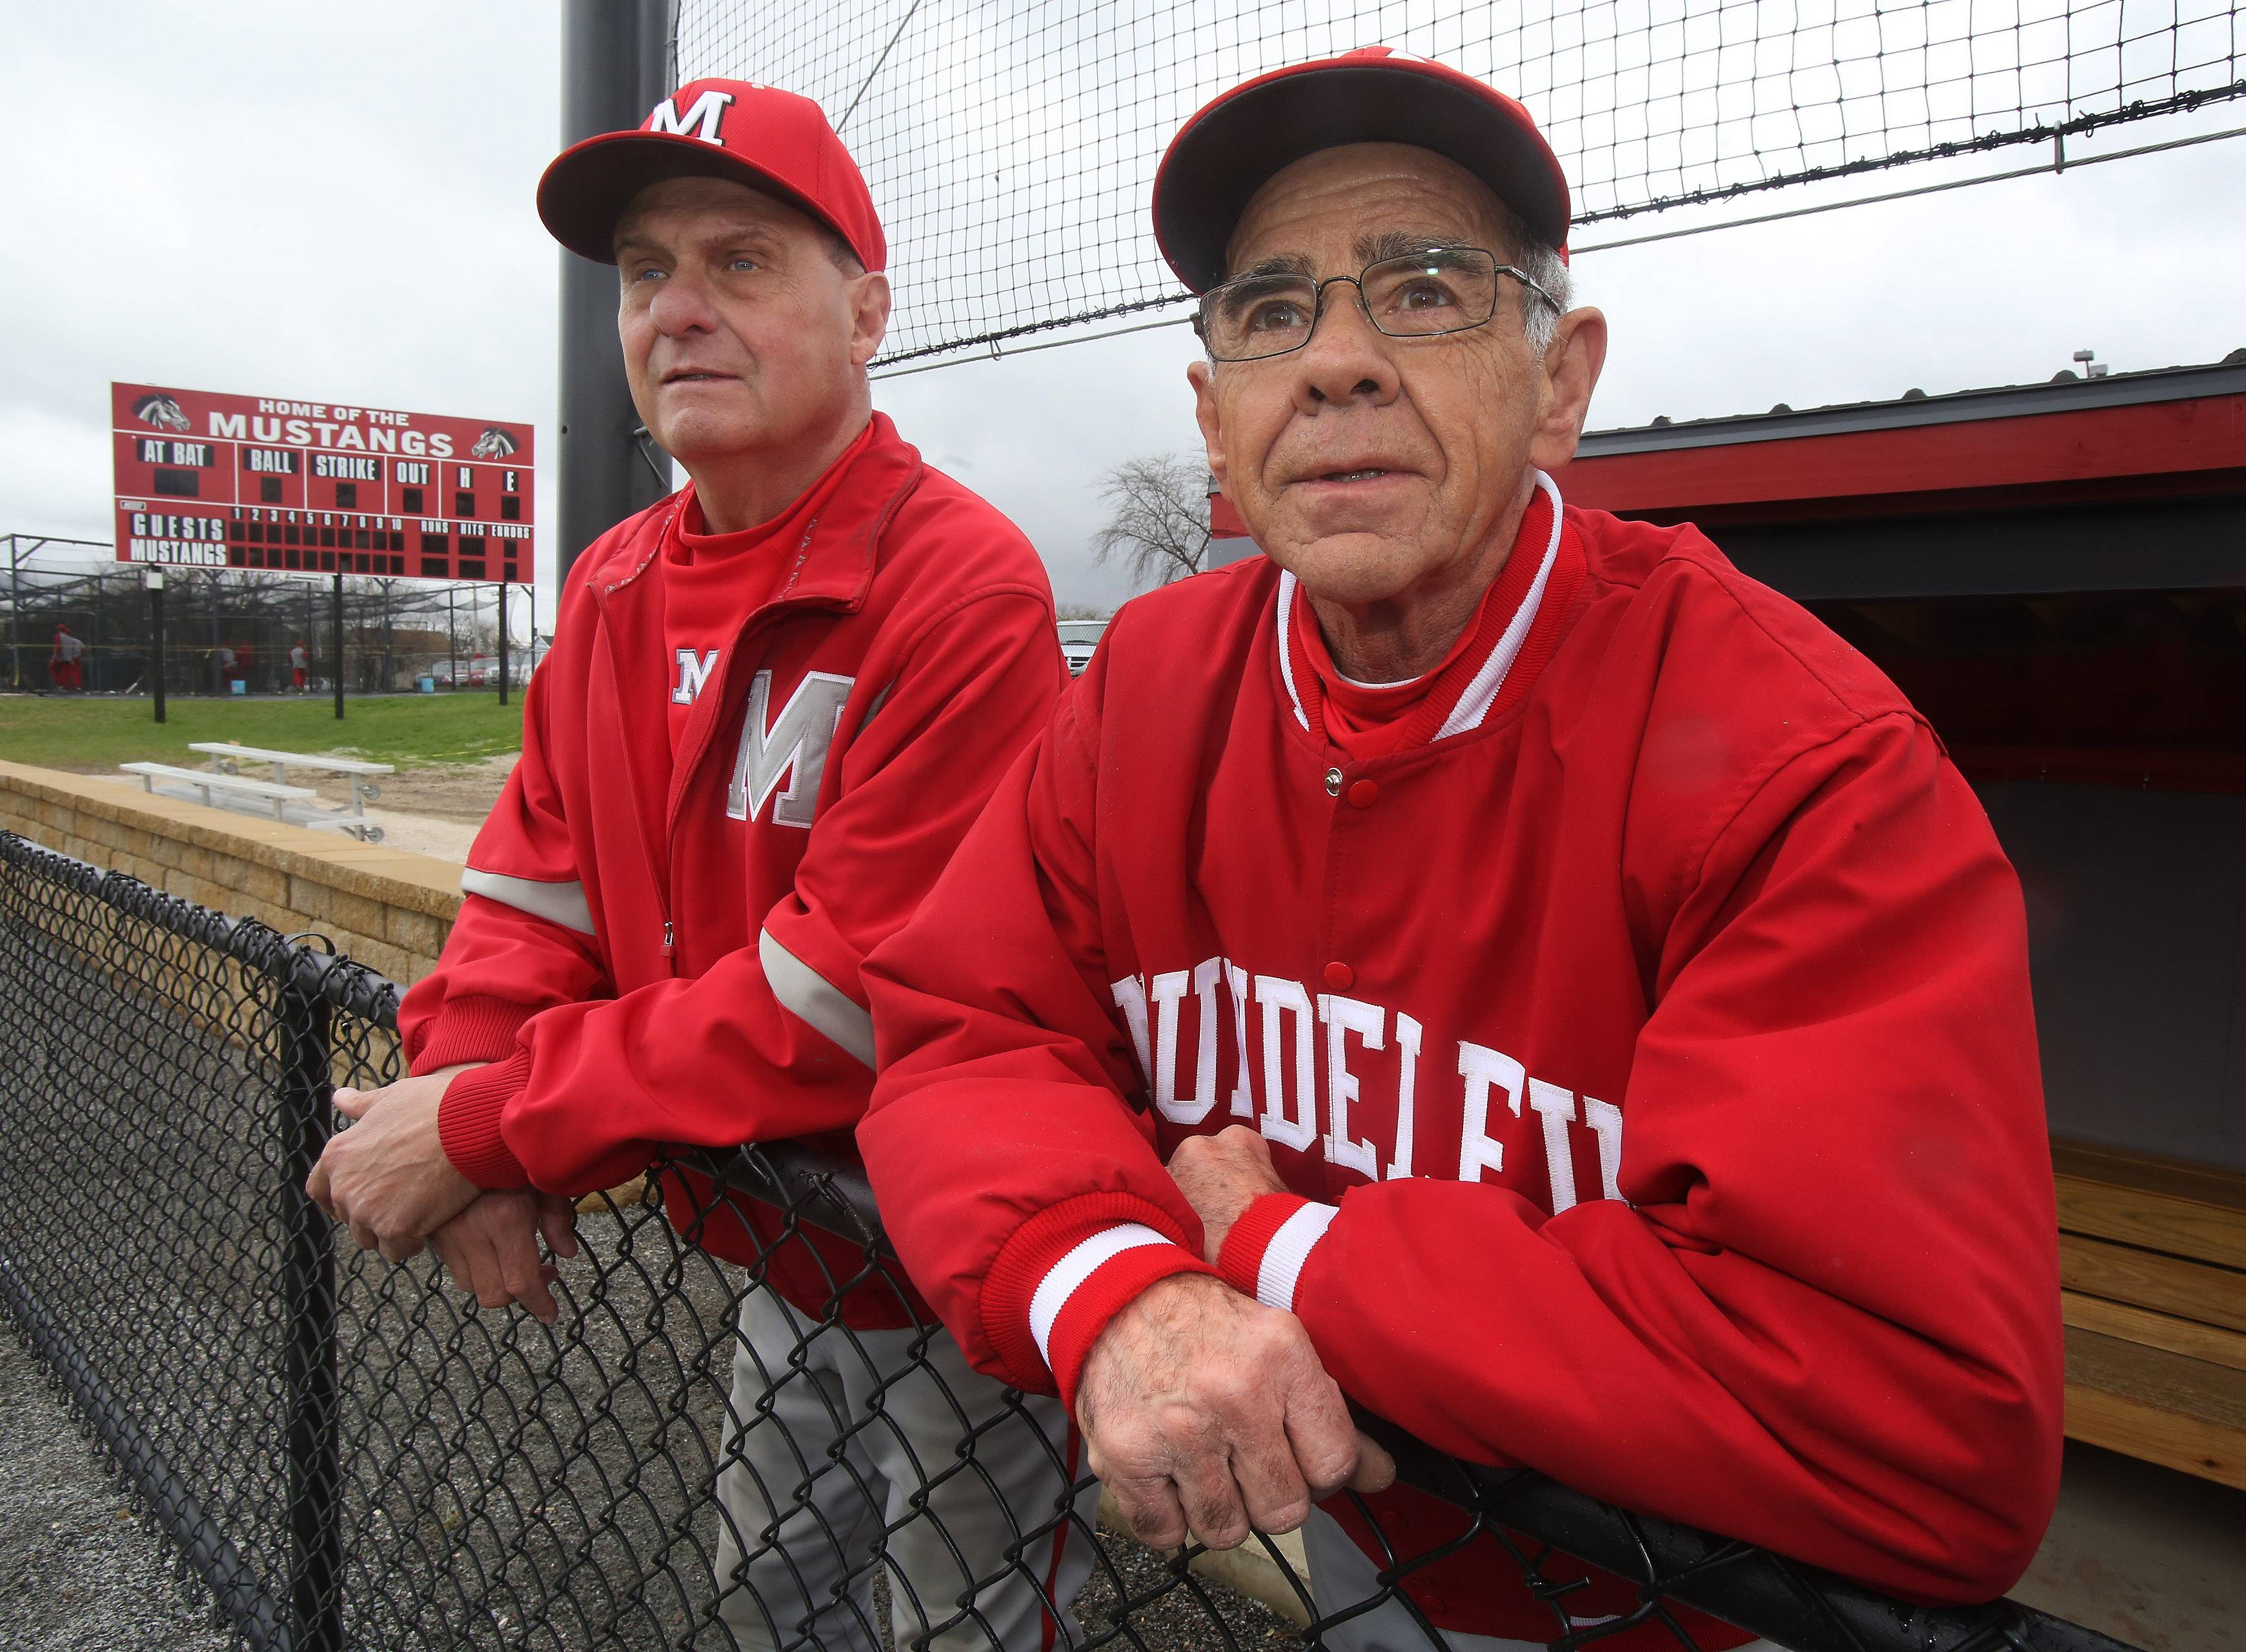 Mundelein assistant baseball coaches Fred Picket, left, and Neil McLoughlin have coached together for more than 45 years. Picket is retiring this year after 45 years and McLoughlin has coached more than 50 years at the high school.